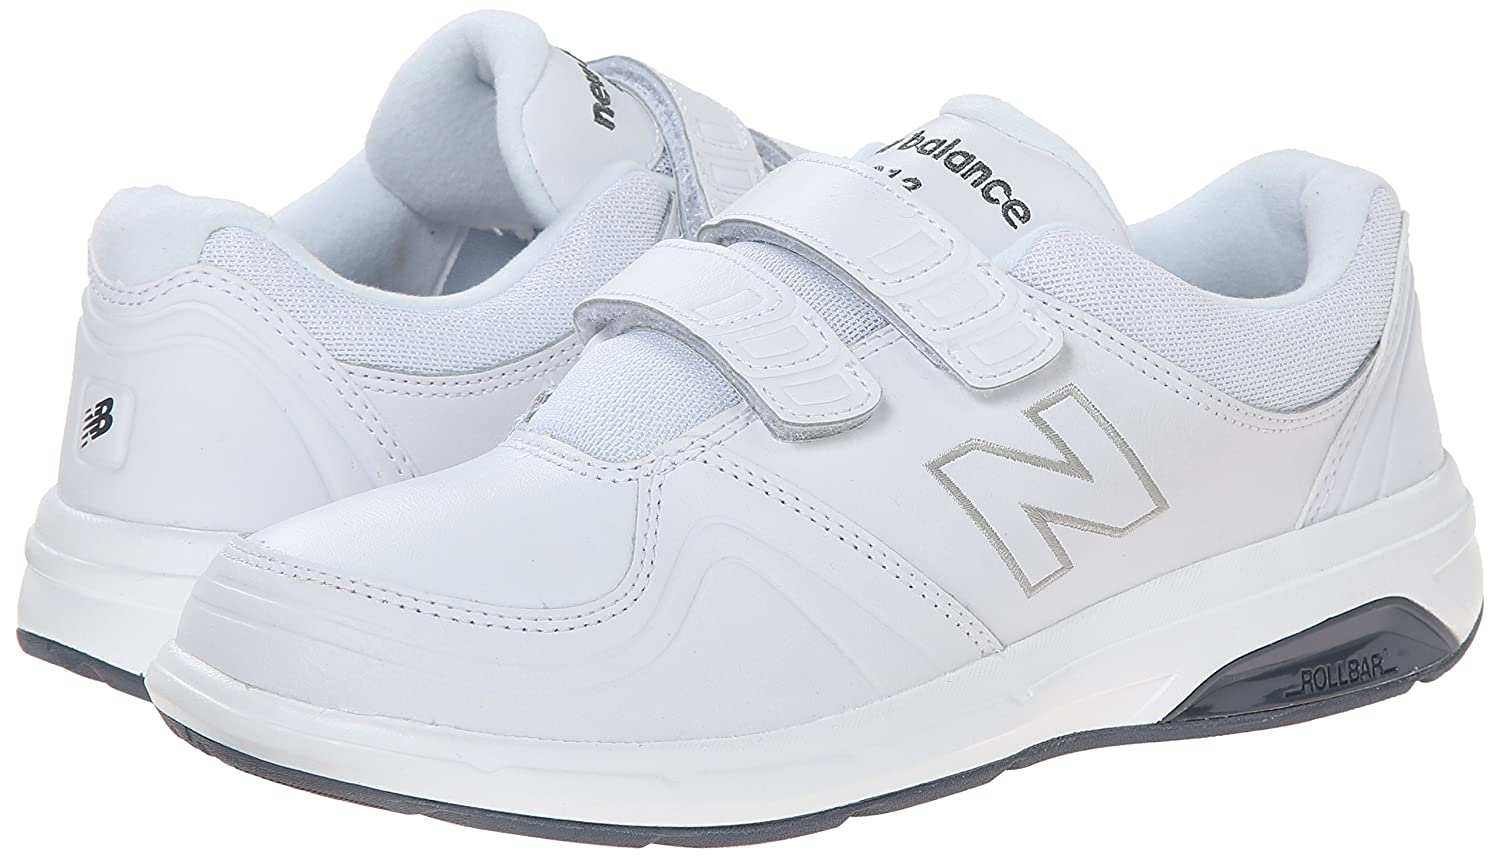 New Balance Women's WW813 Shoe Hook and Loop Walking Shoe WW813 B00OB1TSFW 7.5 2E US|White 59865a